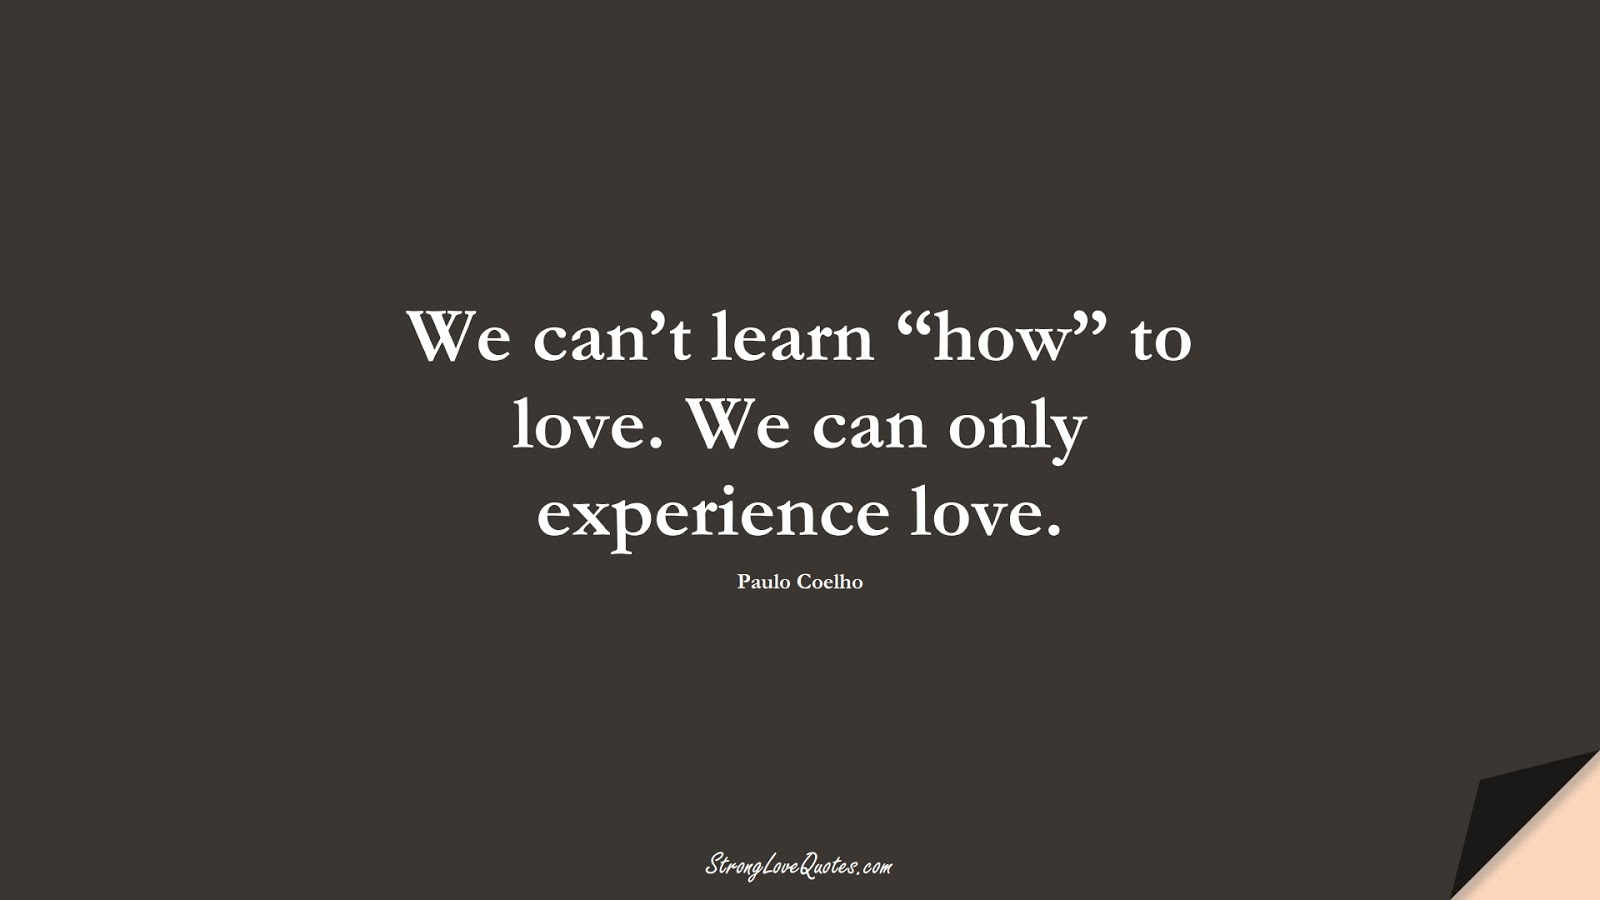 """We can't learn """"how"""" to love. We can only experience love. (Paulo Coelho);  #LearningQuotes"""